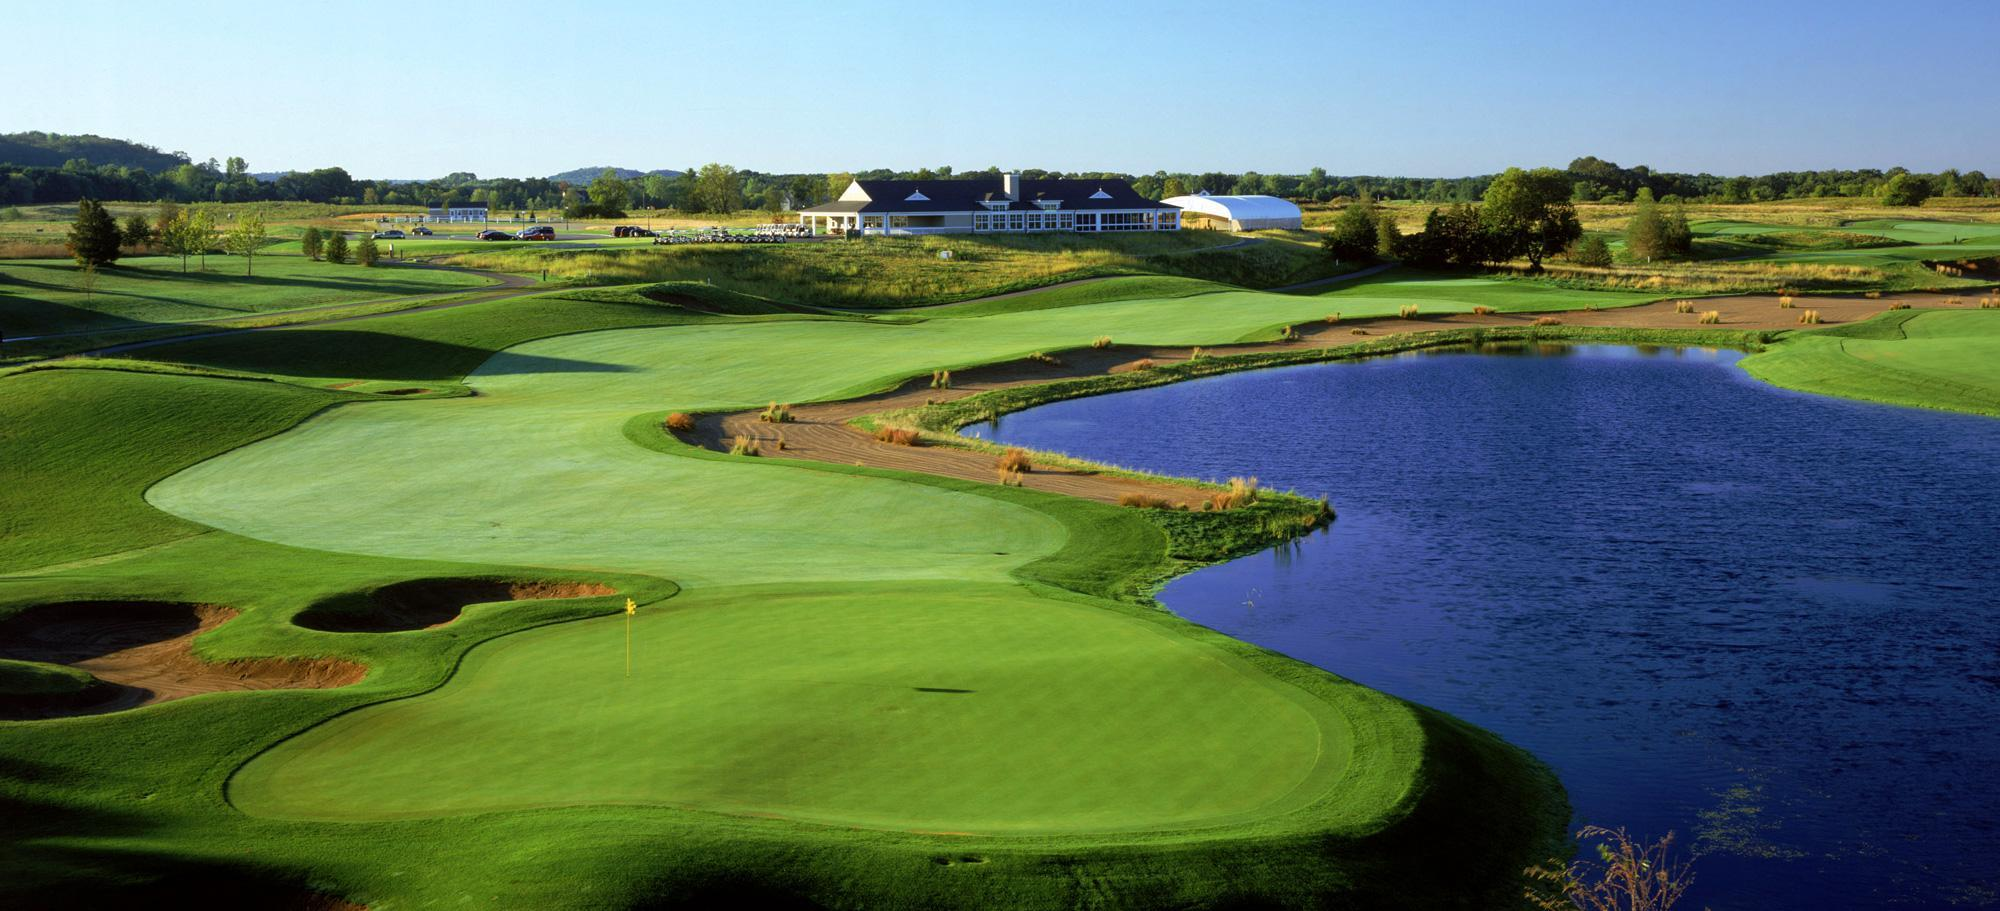 One of America's 100 Greatest Public Courses - Golf Digest (2017/2018 list)